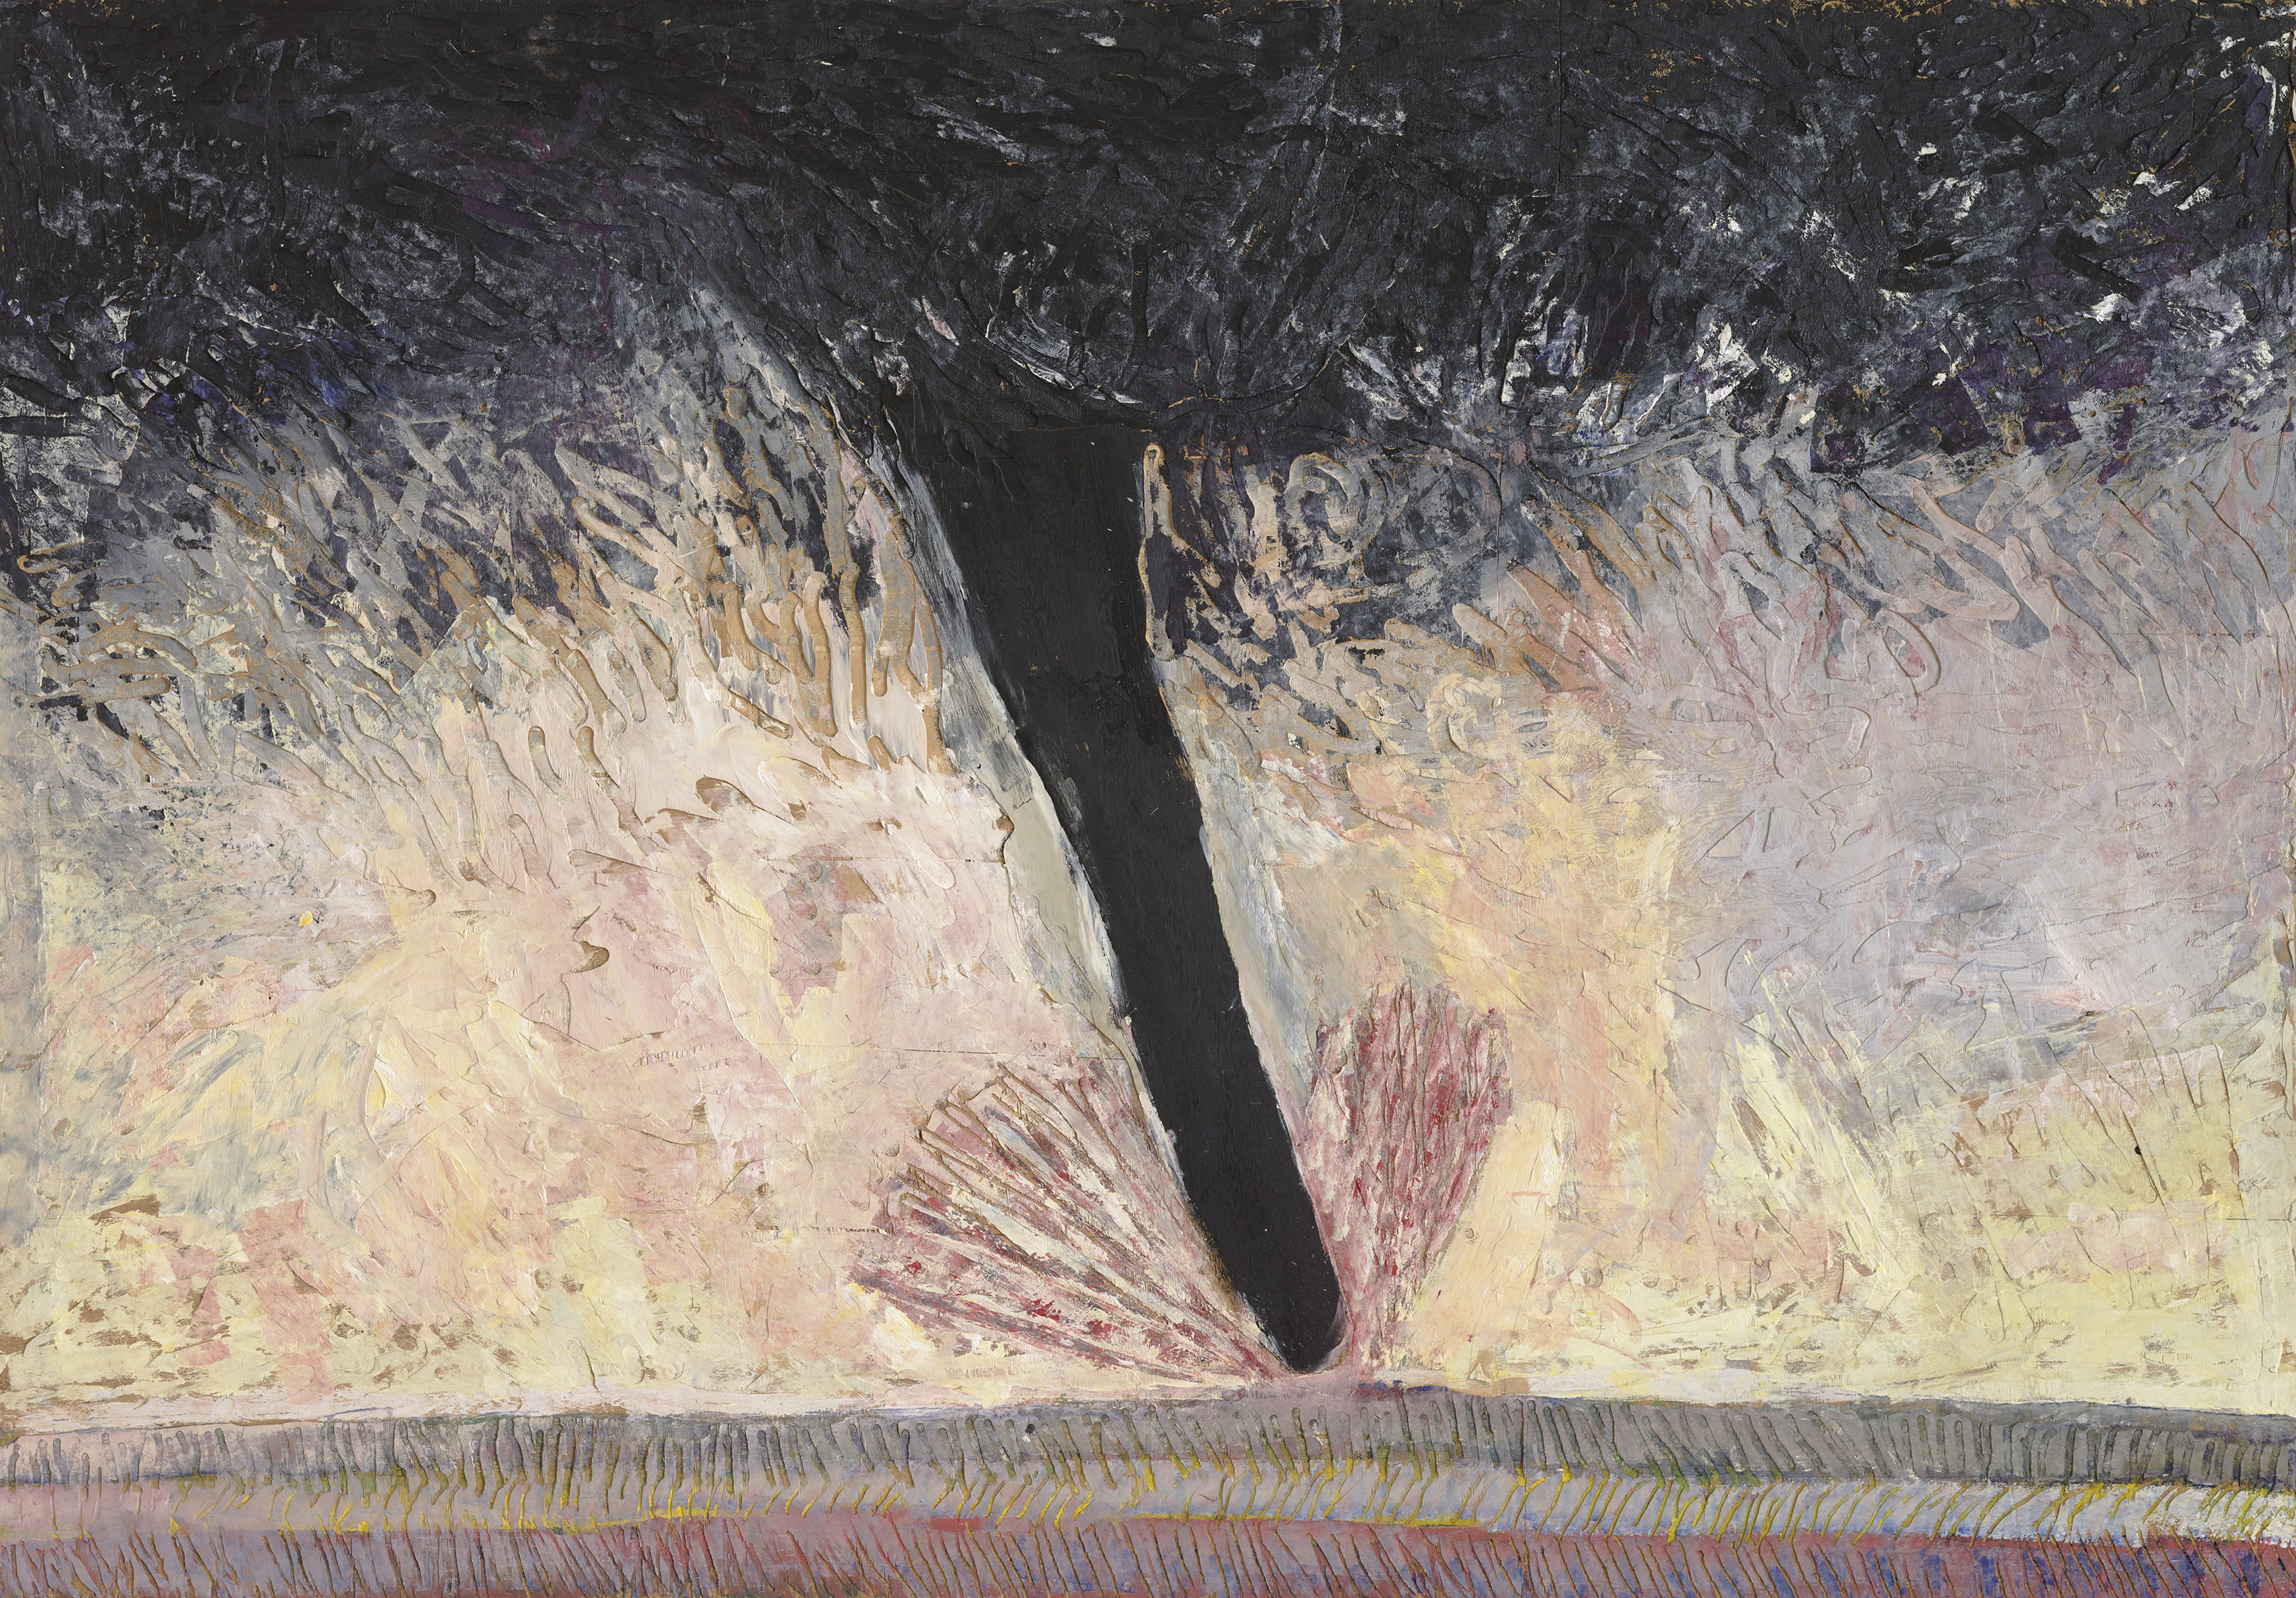 A tornado represented as a large oblique streak occupies the centre of the painting. The deep black of the funnel contrasts with the pale yellow, pink and mauve masses that compose the background. The plywood support is gouged with hatches and grooves.